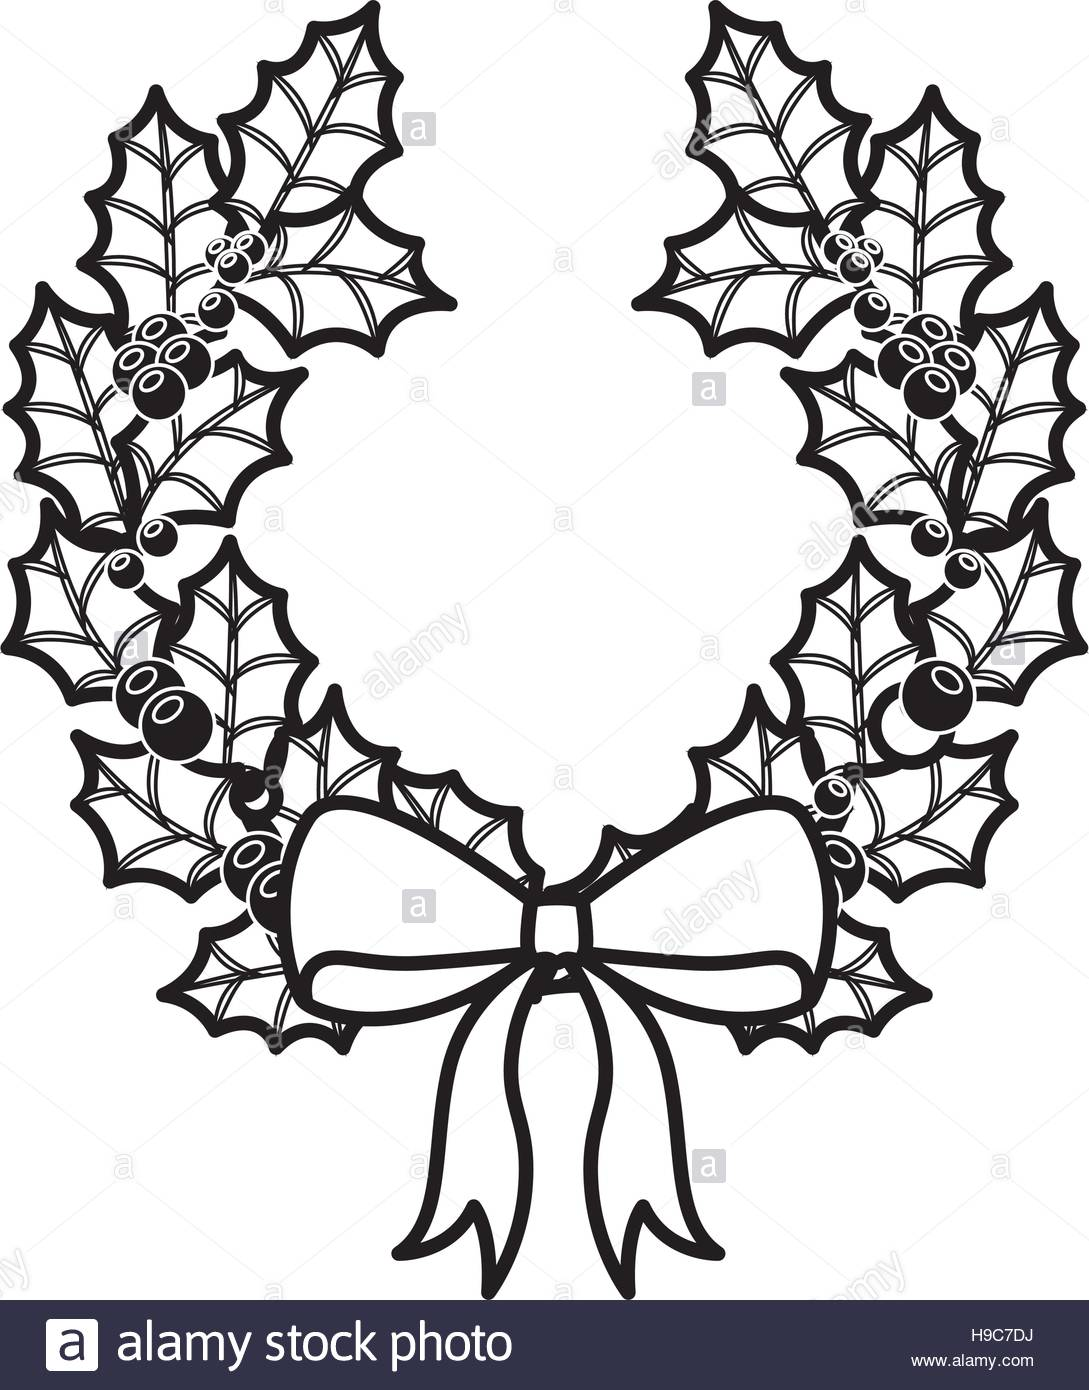 1089x1390 Crown Christmas Ornament Silhouette With Leaves Stock Vector Art